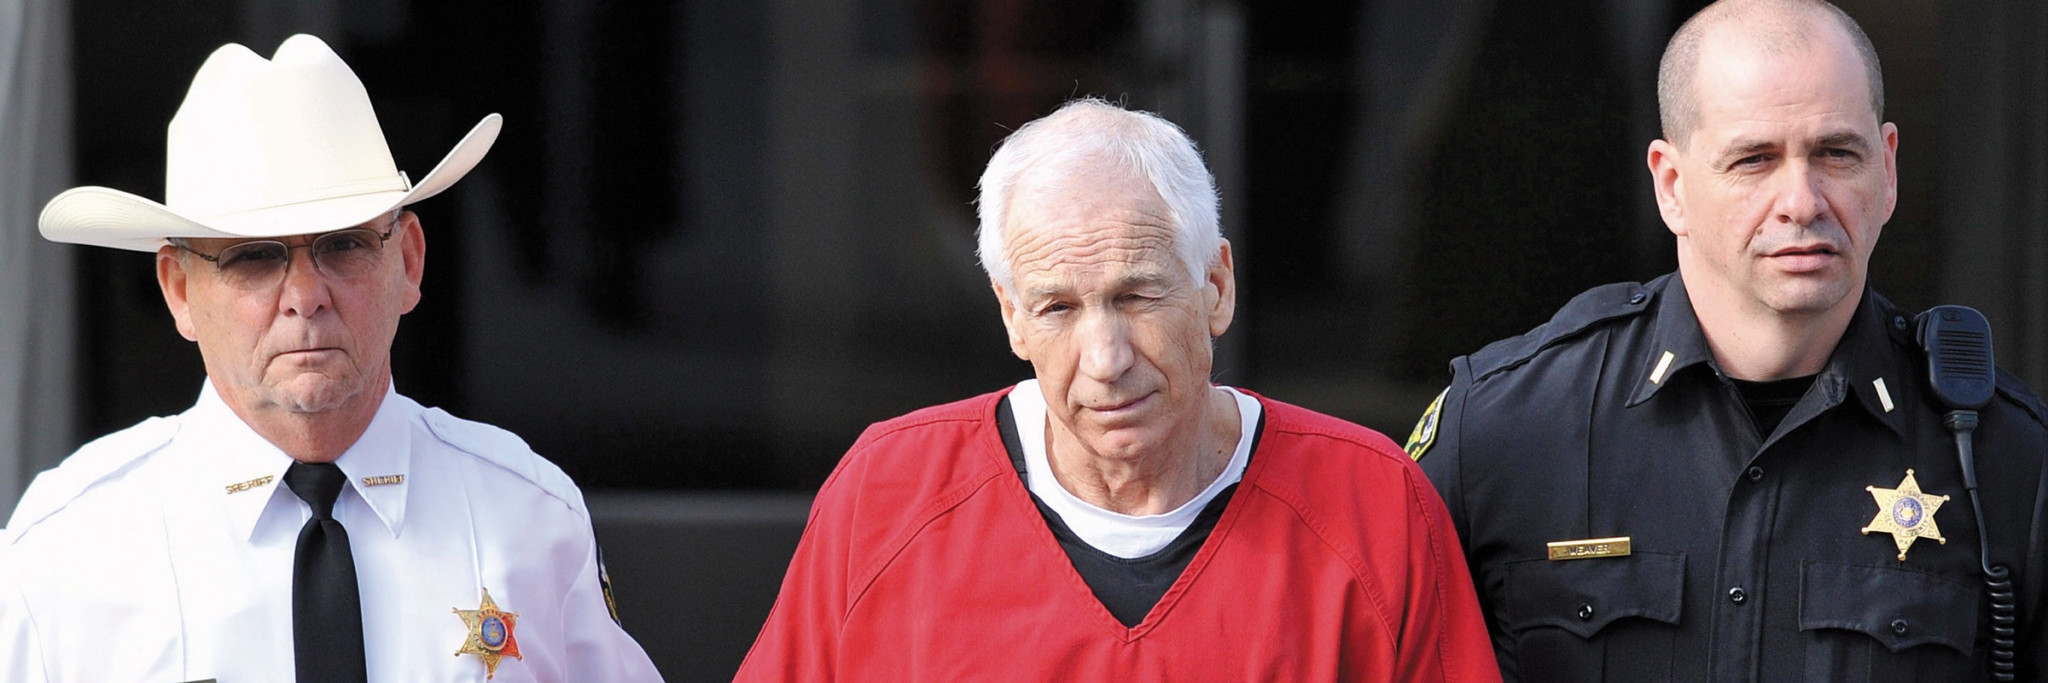 Sandusky was convicted of 45 of 48 counts and Cleland sentenced him to 30 to 60 years in prison—essentially a life sentence for the 68-year-old.